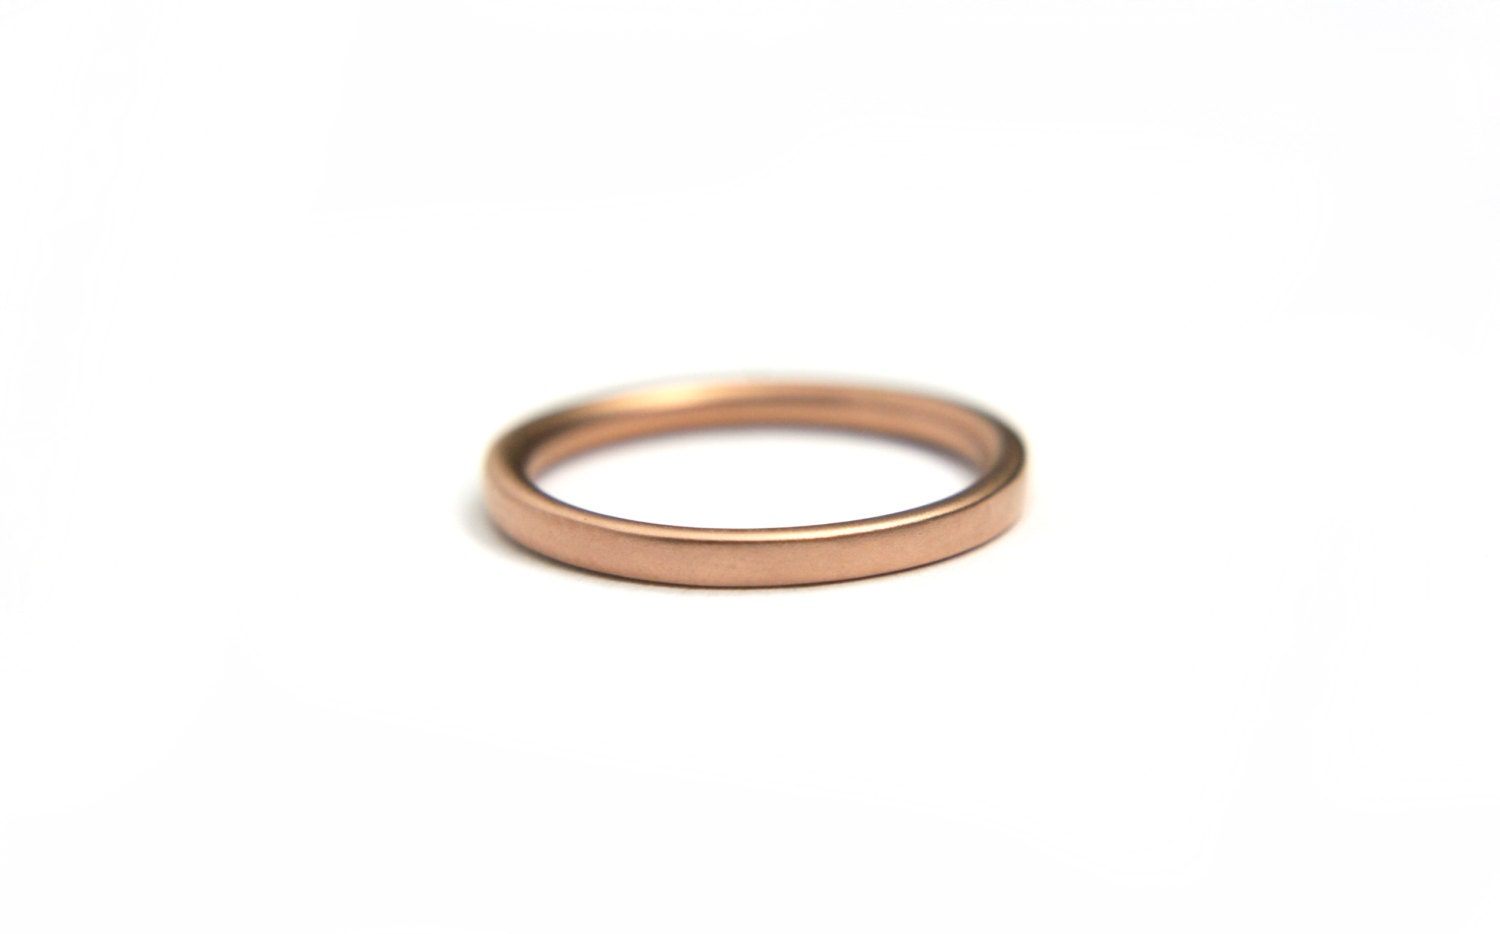 14k rose gold simple wedding ring by AltanaMarie on Etsy